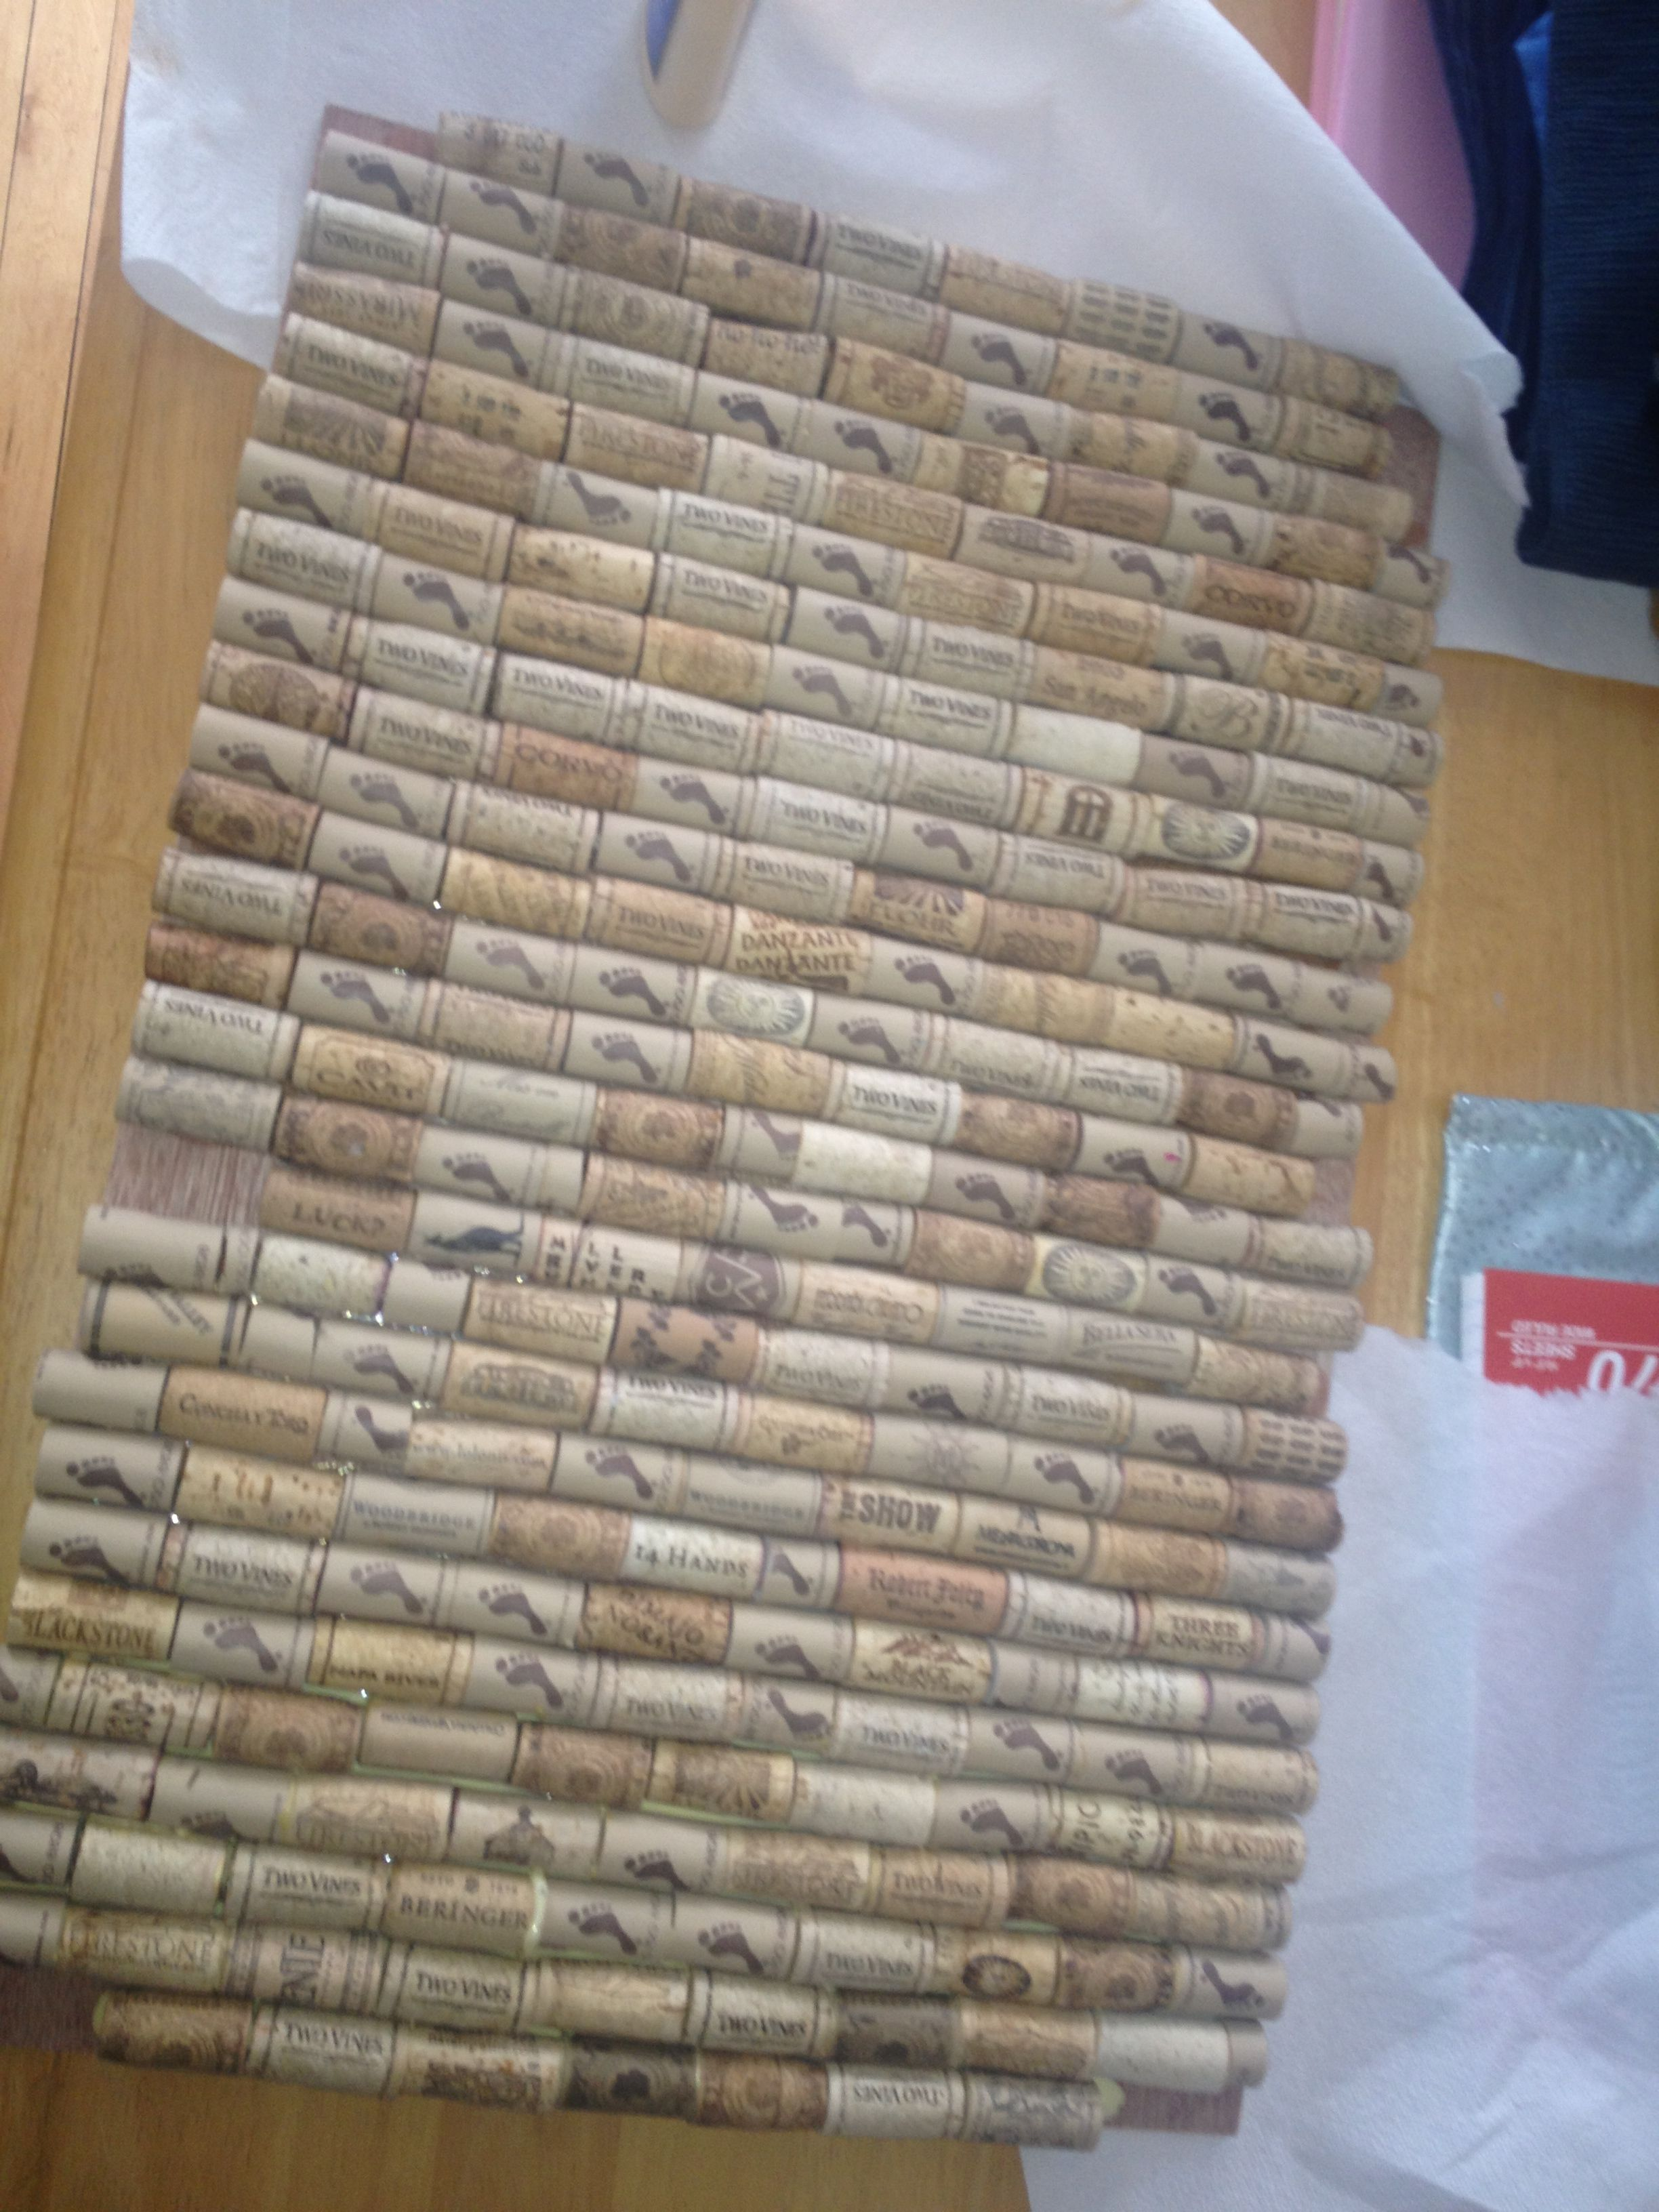 Wine cork ceiling tiles diy craft projects pinterest ceiling wine cork ceiling tiles doublecrazyfo Images